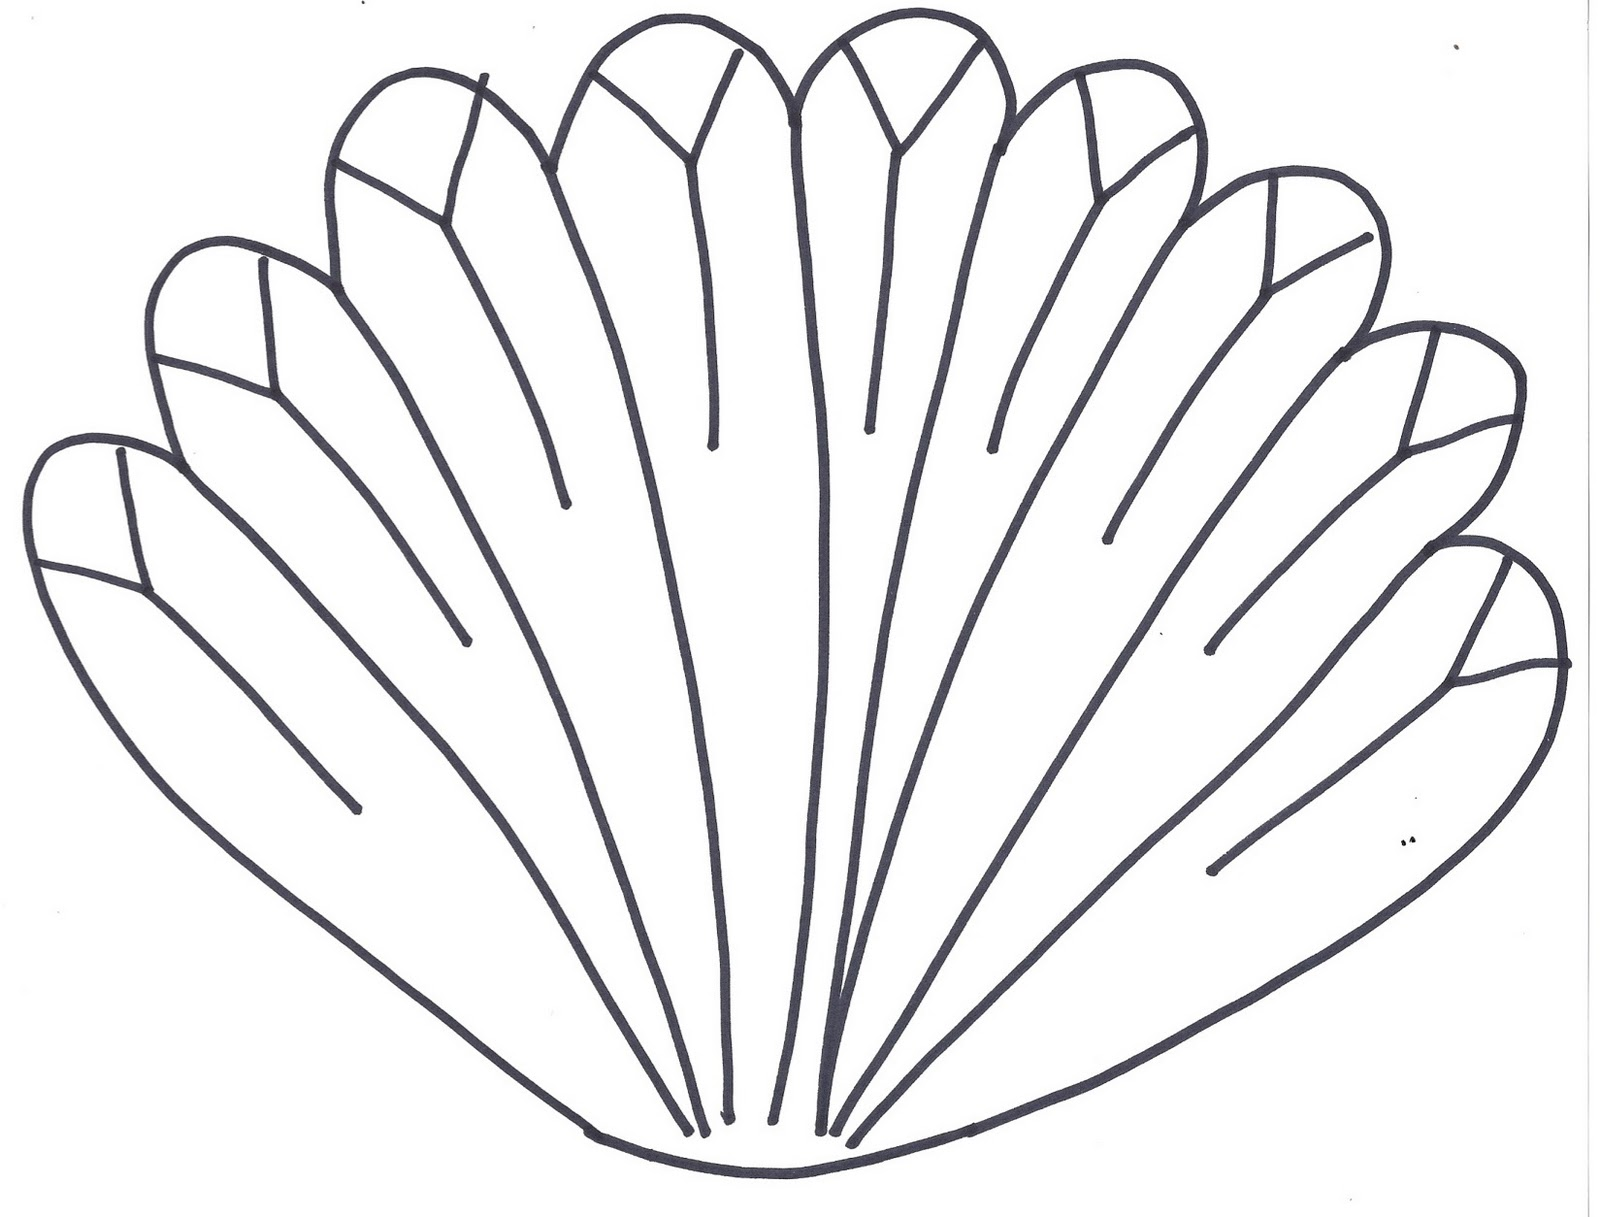 47 images of Cartoon Turkey Feathers . You can use these free cliparts ...